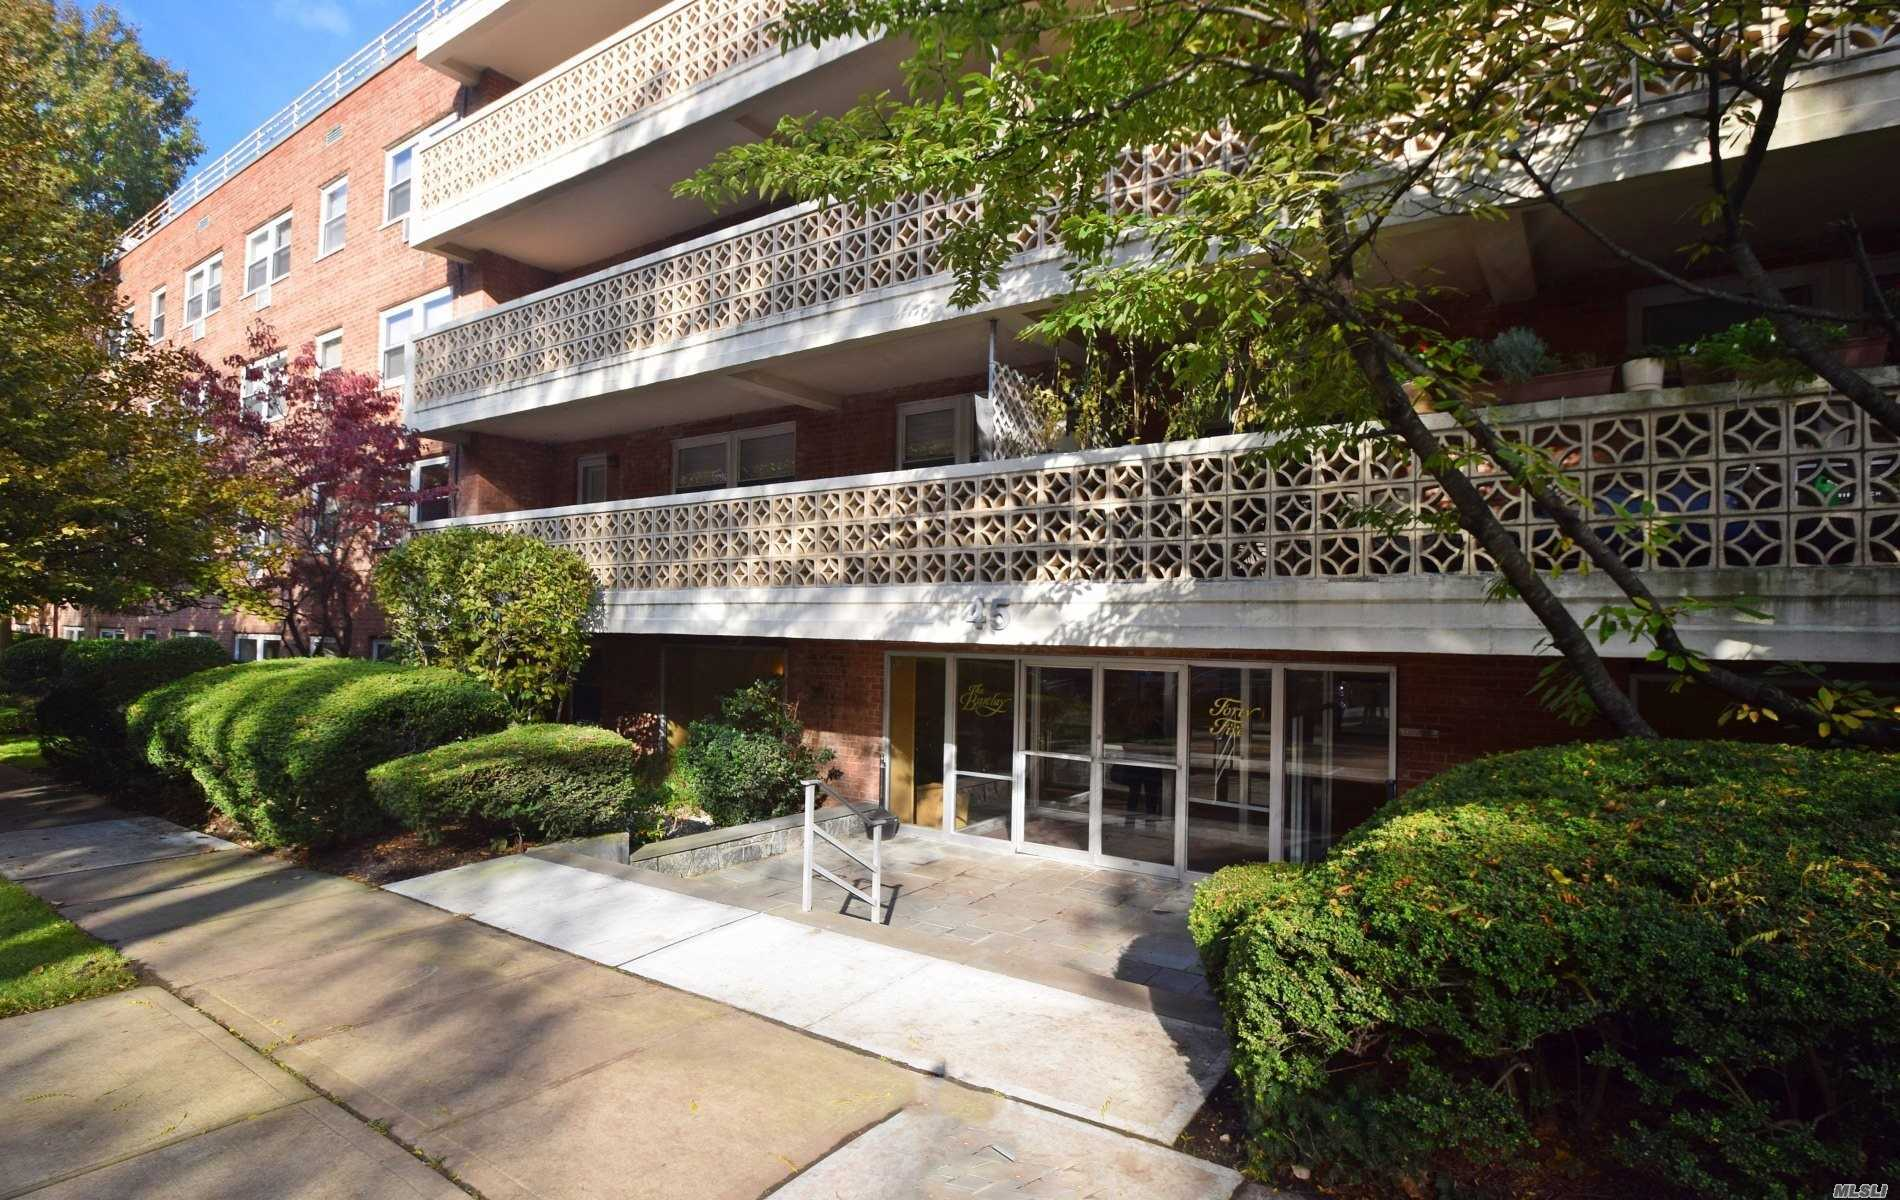 Spacious, Bright And Renovated Studio Which Can Be Converted To A 1 Bedroom. L Shaped Living Room/Alcove Area, Dining Area Plus Eat-In-Kitchen, Living Room And Bath.  Three Closets - Two Are Very Large. Freshly Painted, Ready To Move Right In! Short Wait List To Park. Three Blocks From The Lirr.  Building Has Its Own Generator And New Laundry Room.